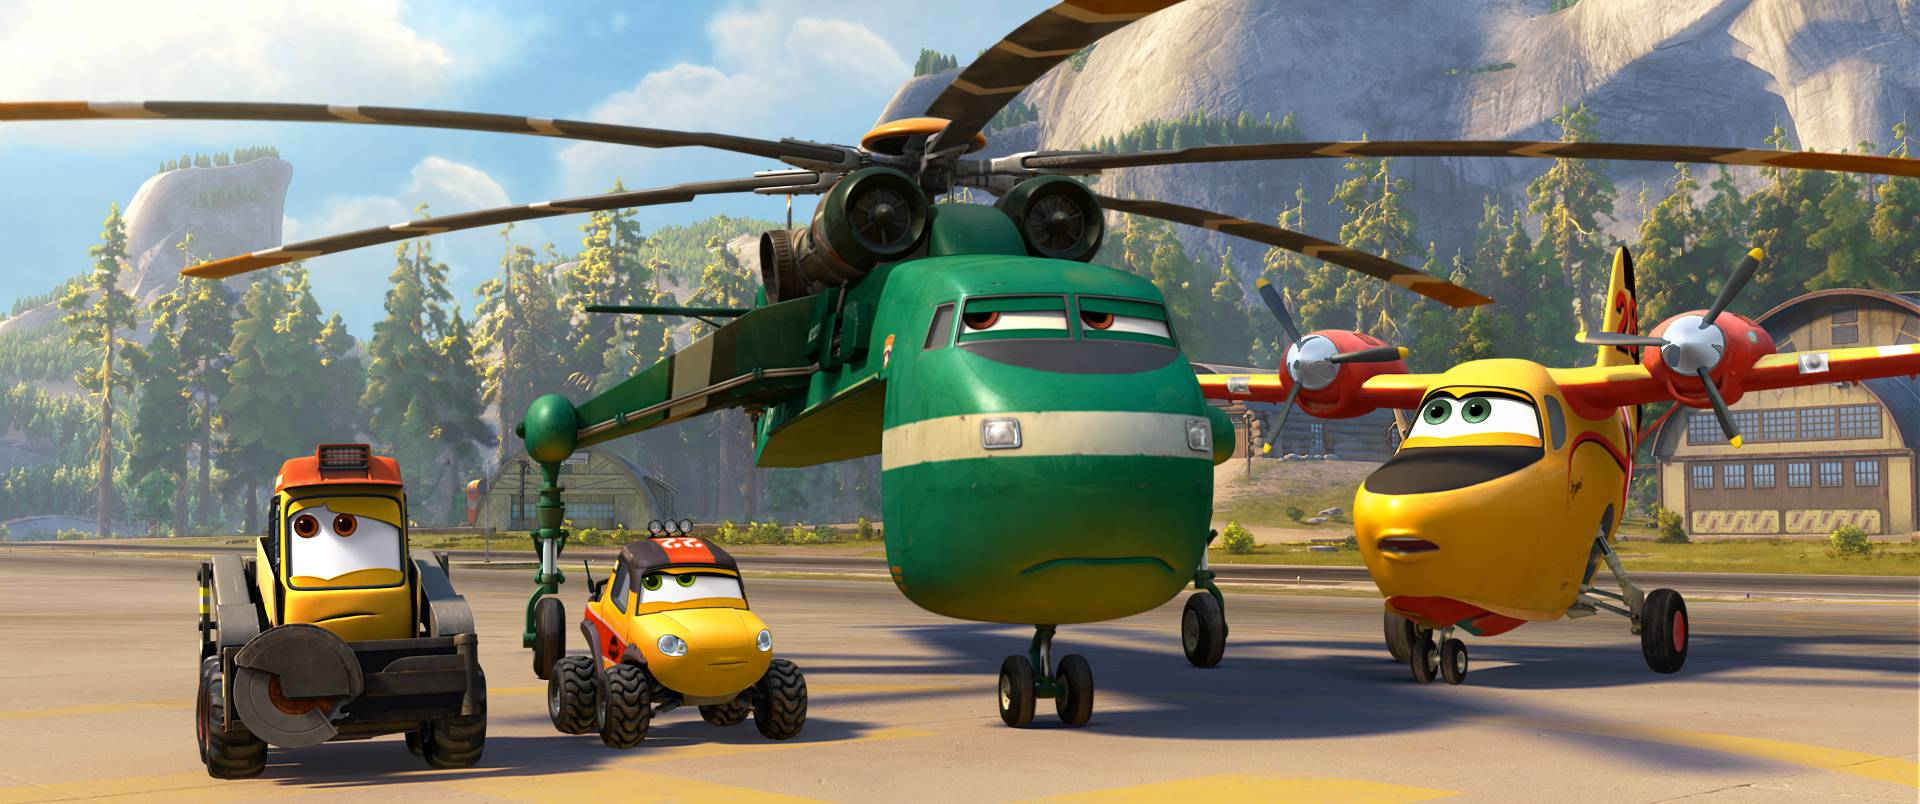 "Windlifter the helicopter (Wes Studi) takes over as boss of the rescue team in ""Planes: Fire & Rescue."""